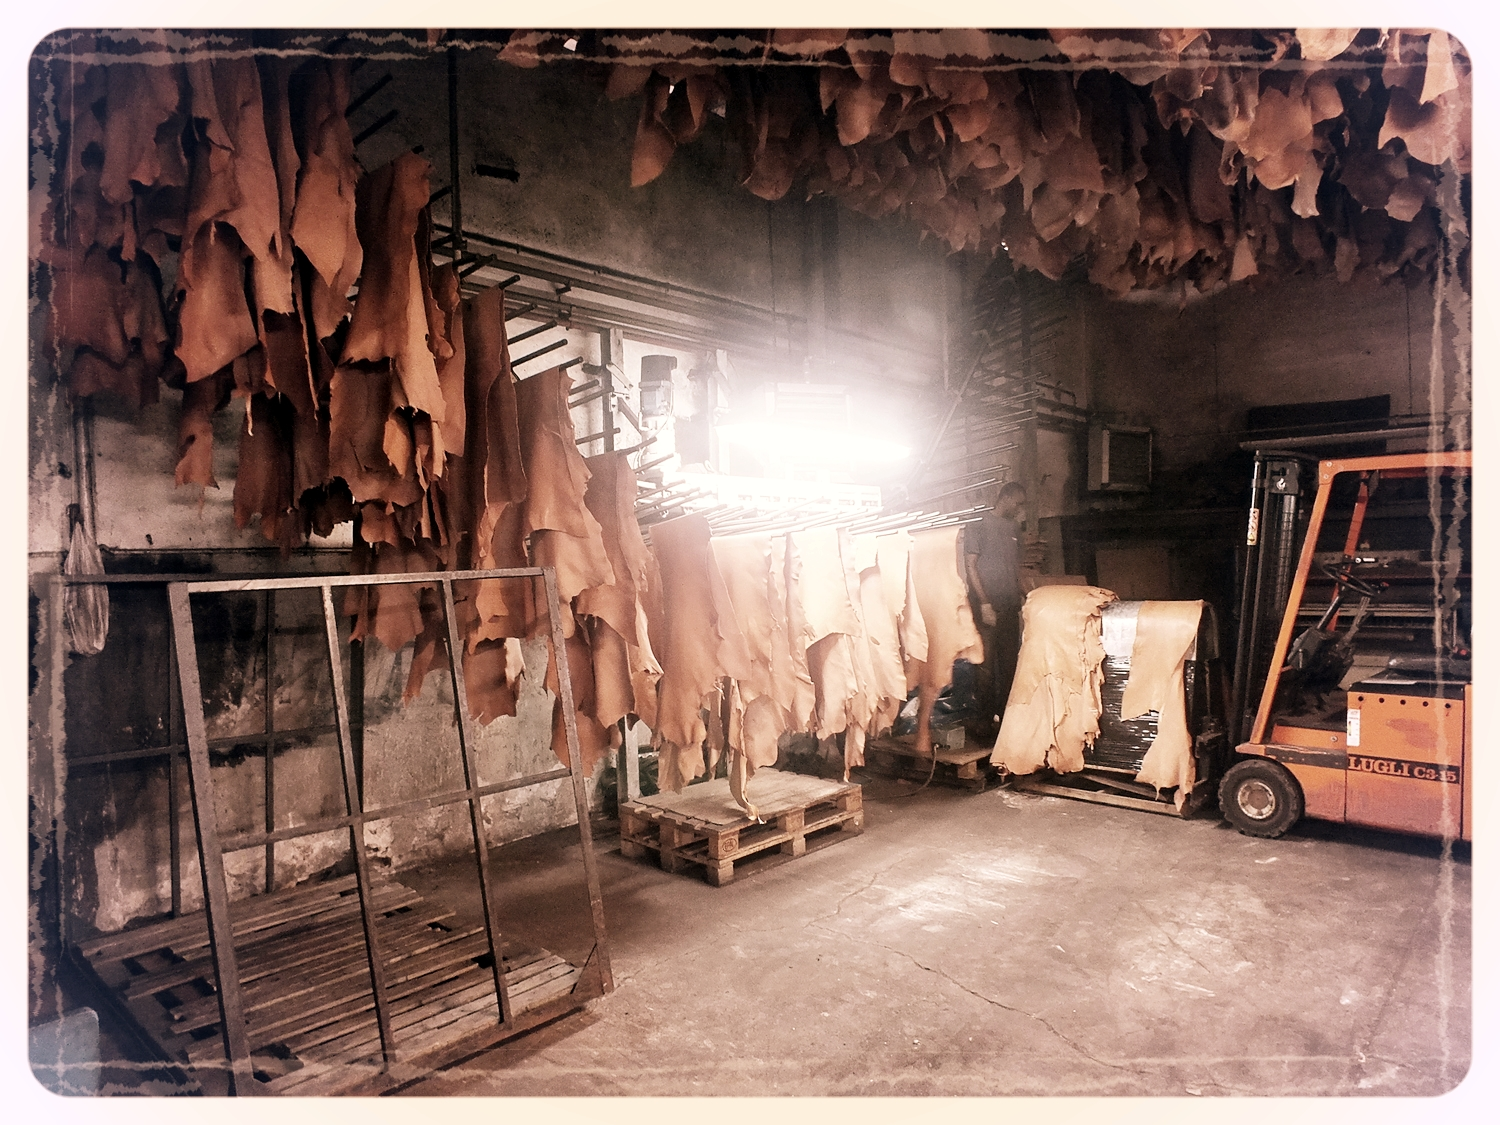 Drying the leathers in the Tannery